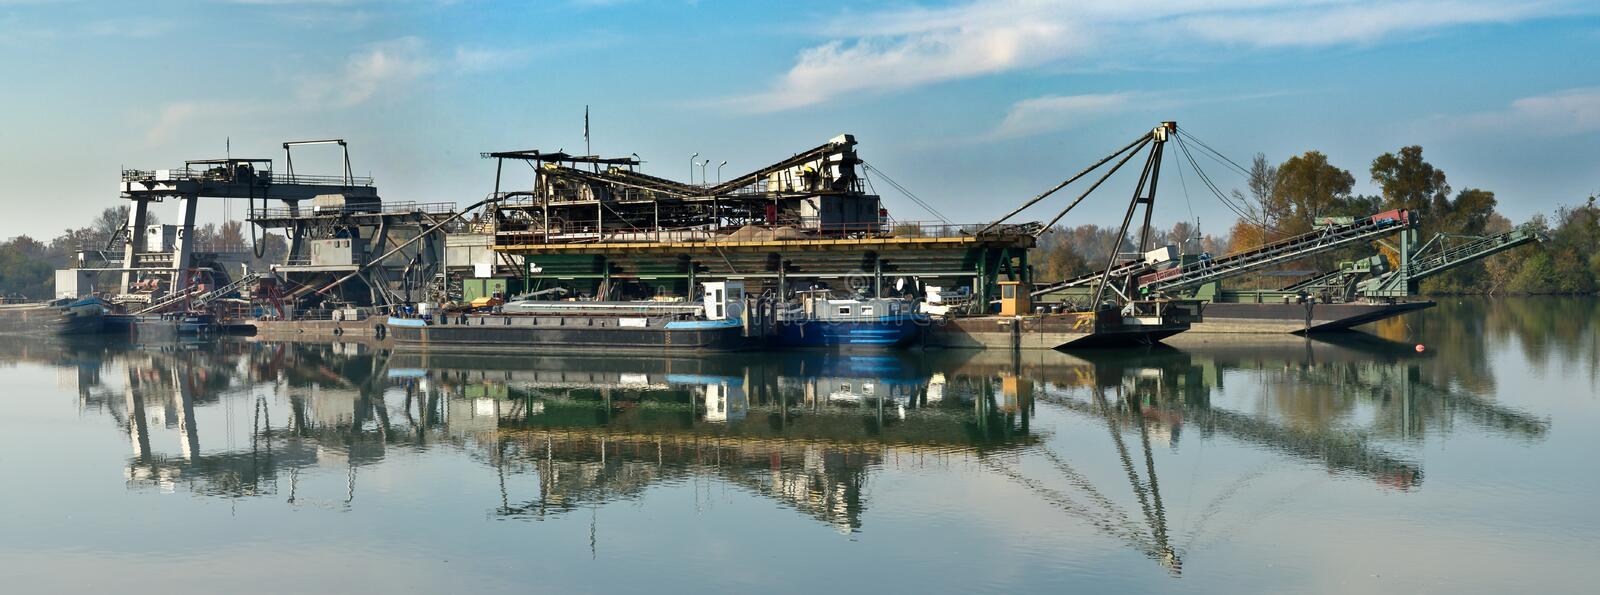 Floater dredge. Stitched Panorama of a floater dredge at rhine river, germany royalty free stock photos